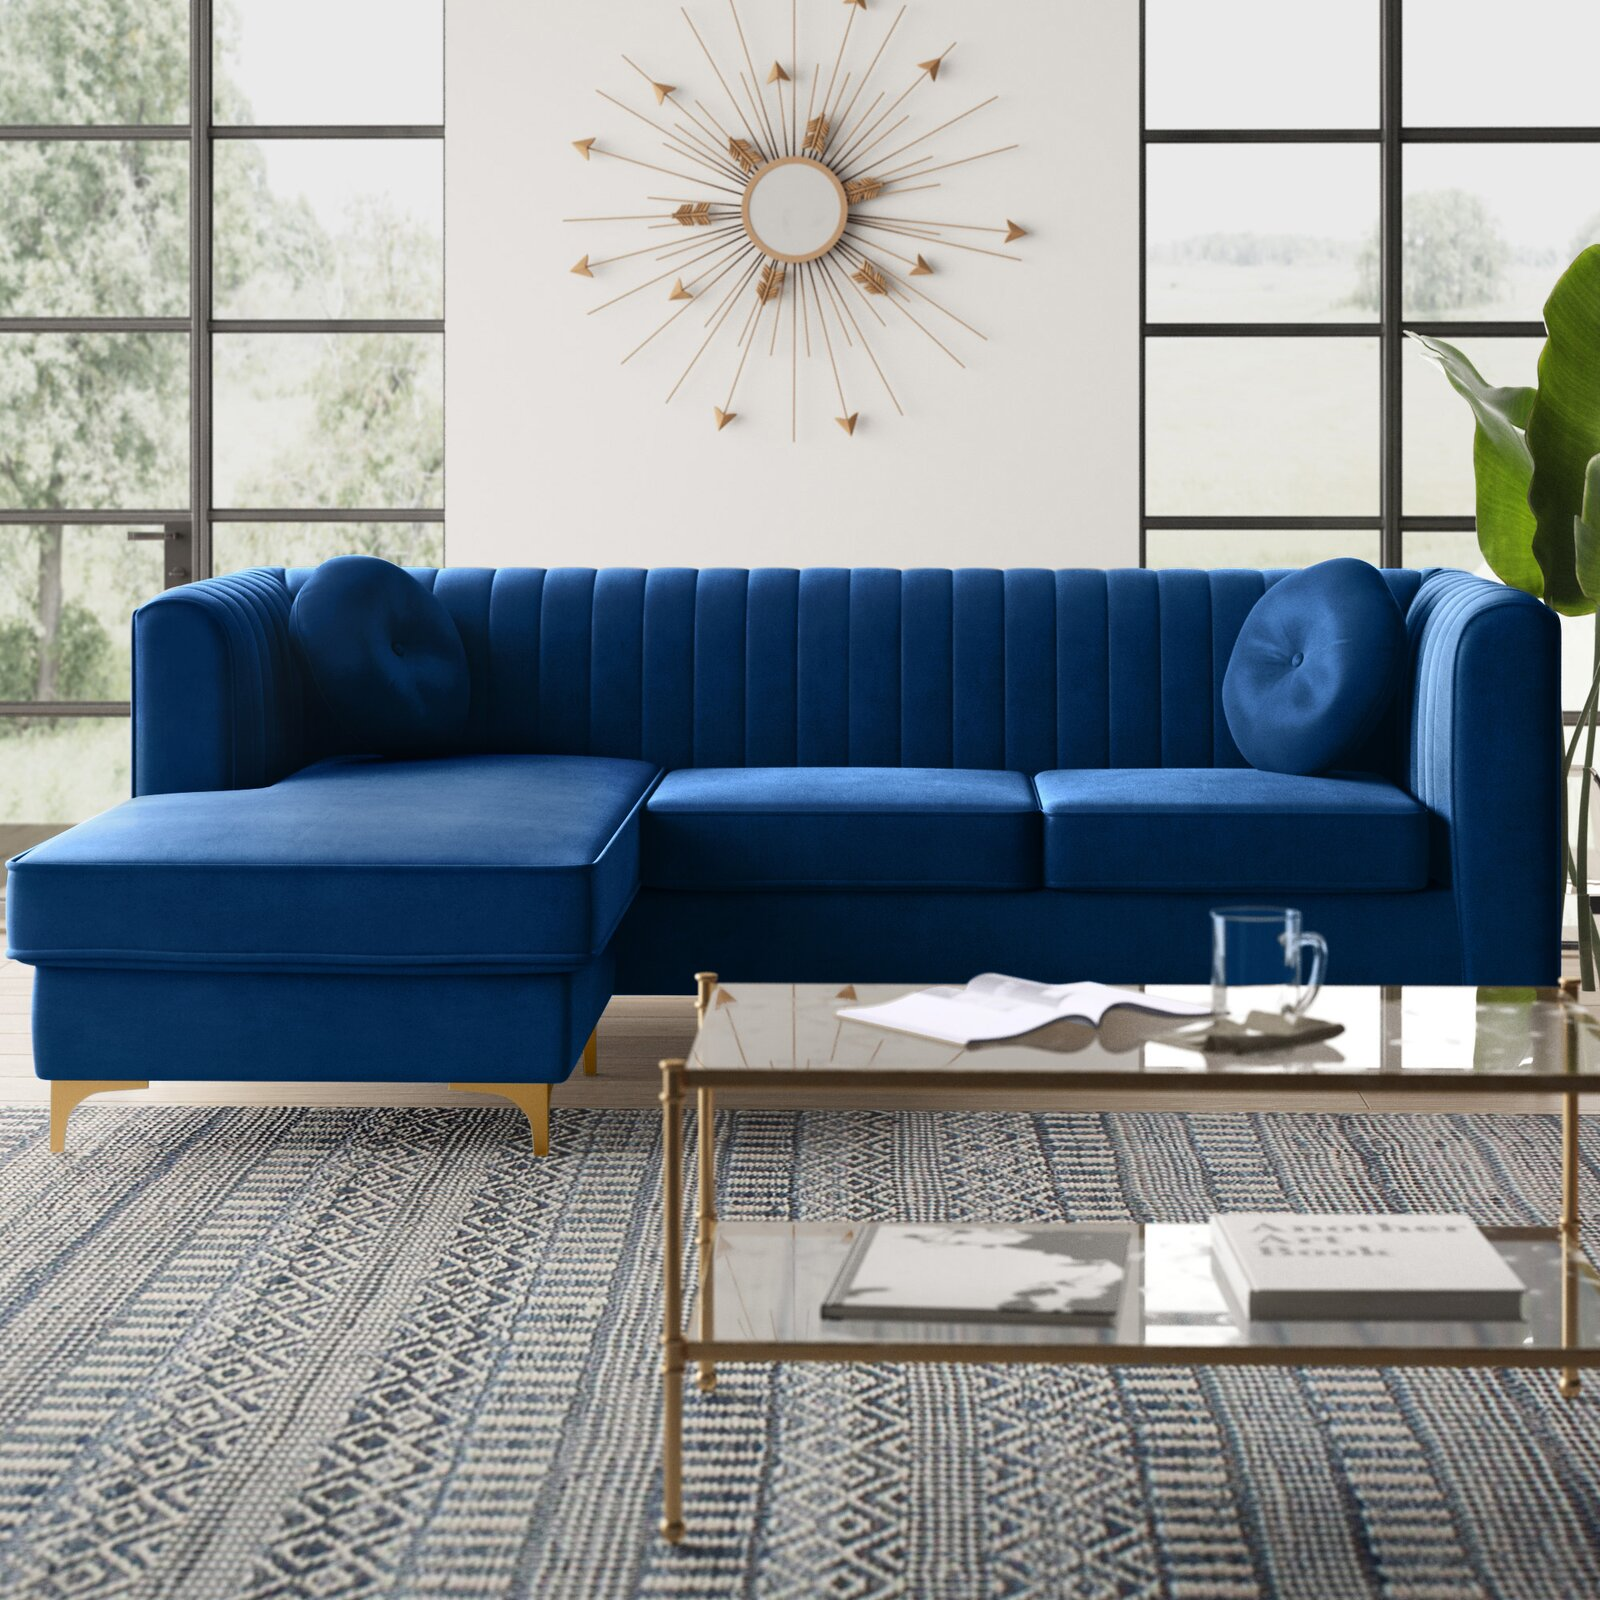 88-inch-small-sectional-sofa-with-chaise-deep-blue-velvet-upholstery-channel-tufted-tuxedo-couch-with-round-accent-pillows